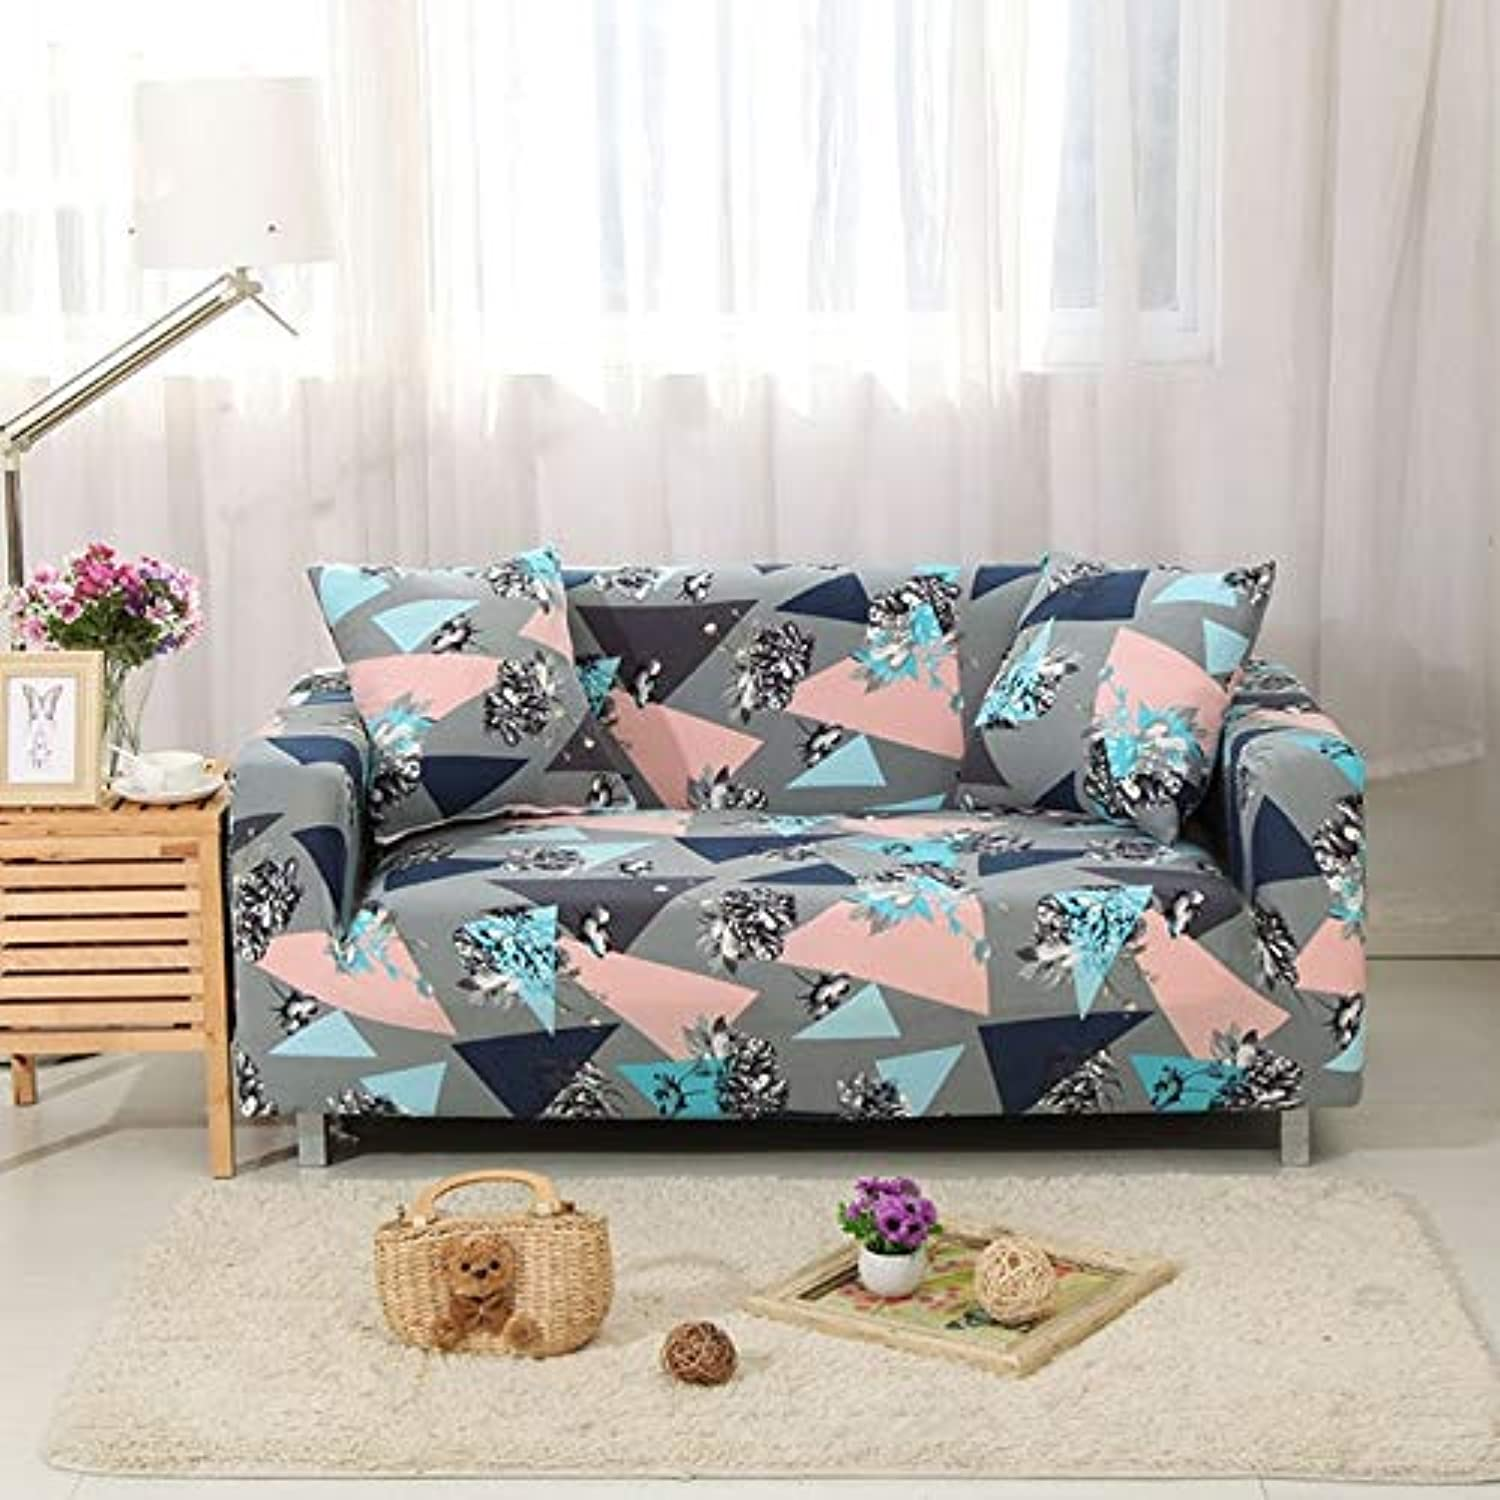 European Elegant Printing Sofa Cover Tight Wrap All-Inclusive Sectional Elastic Seat Couch Covers Slipcovers 1PC   color 13, 2seater 145-185cm